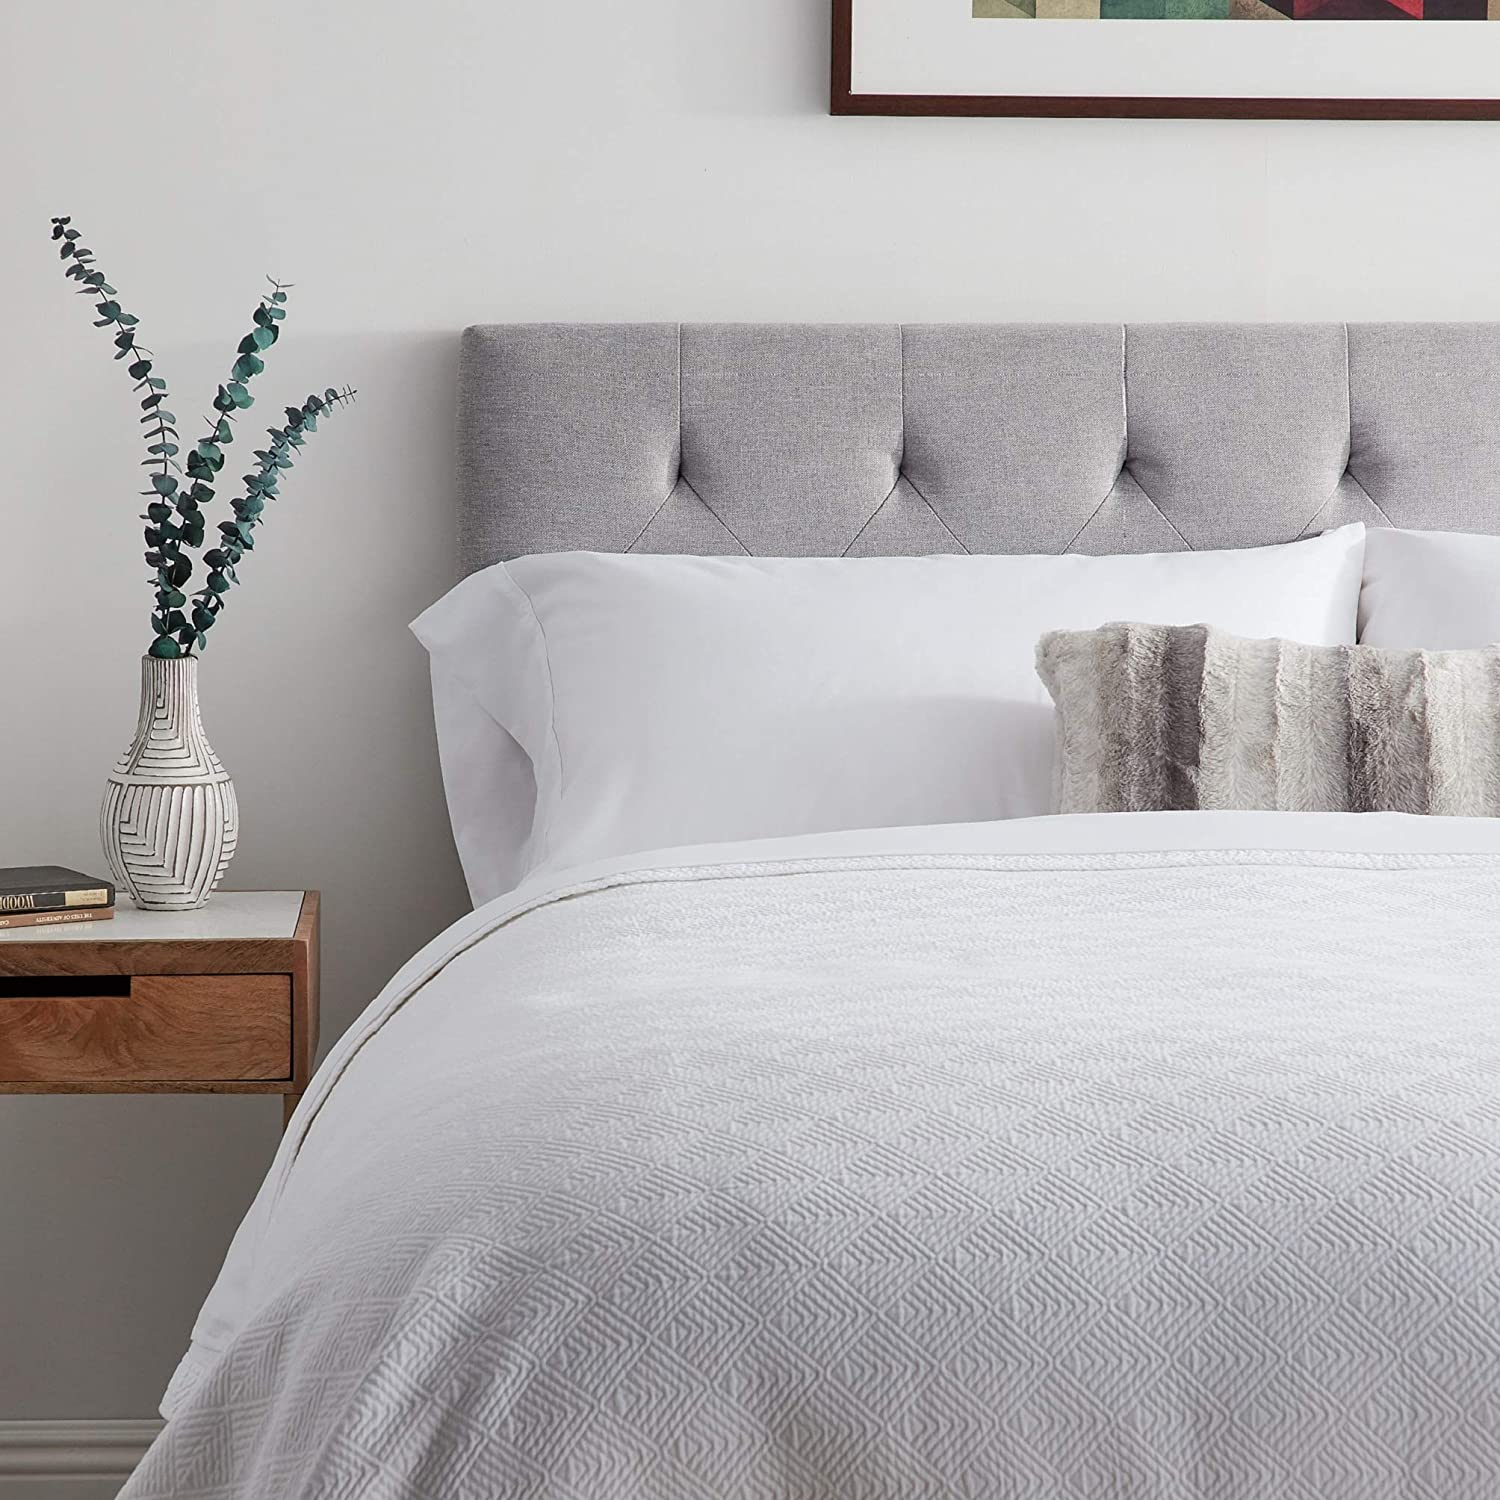 LUCID LUTTRSPE21HB Square Tufted Mid Rise Headboard Soft Linen Inspired Fabric Adjustable Height Twin//Twin XL Durable Wood Construction